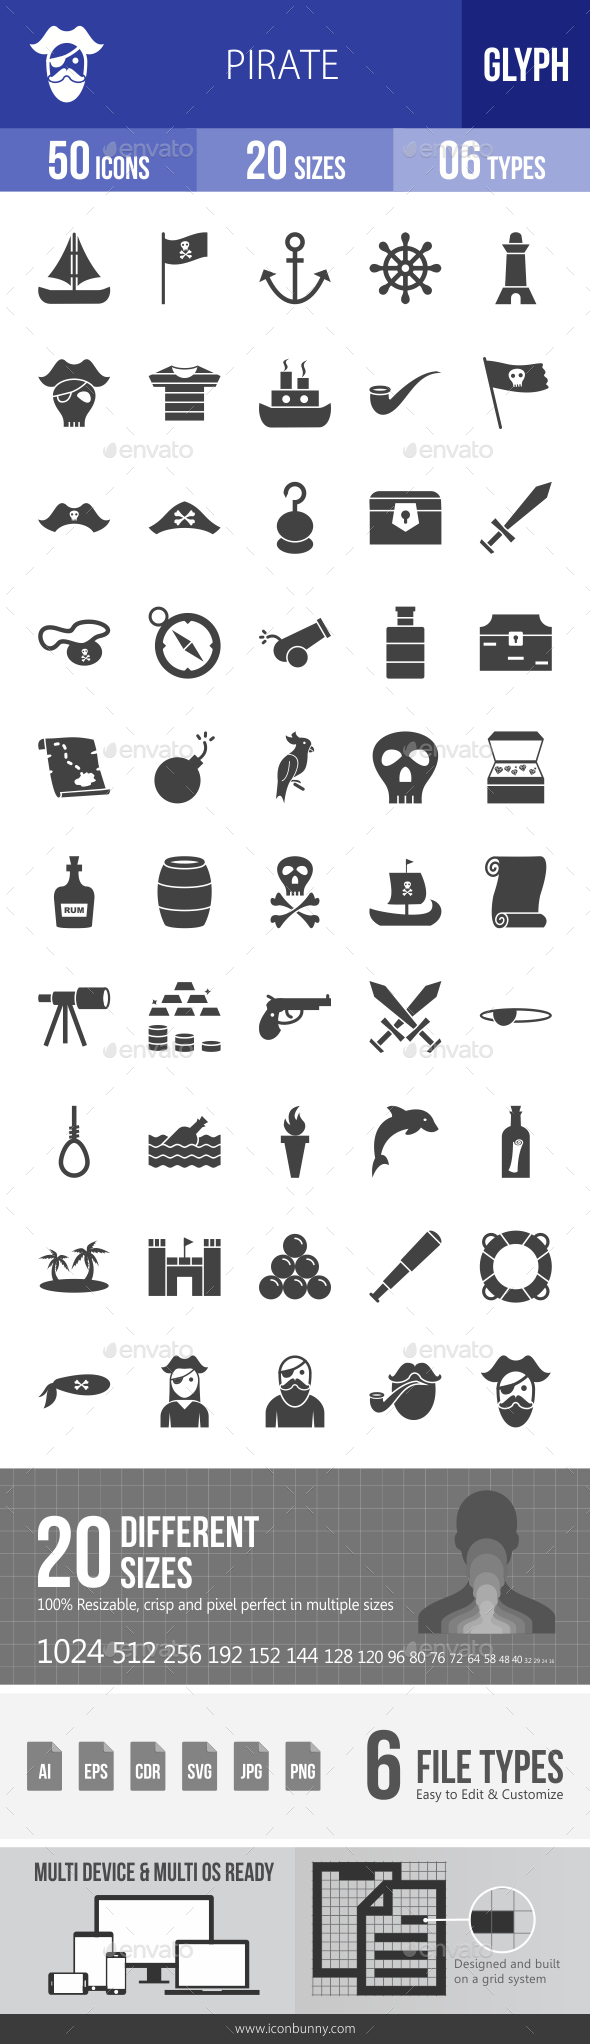 Pirate Glyph Icons - Icons